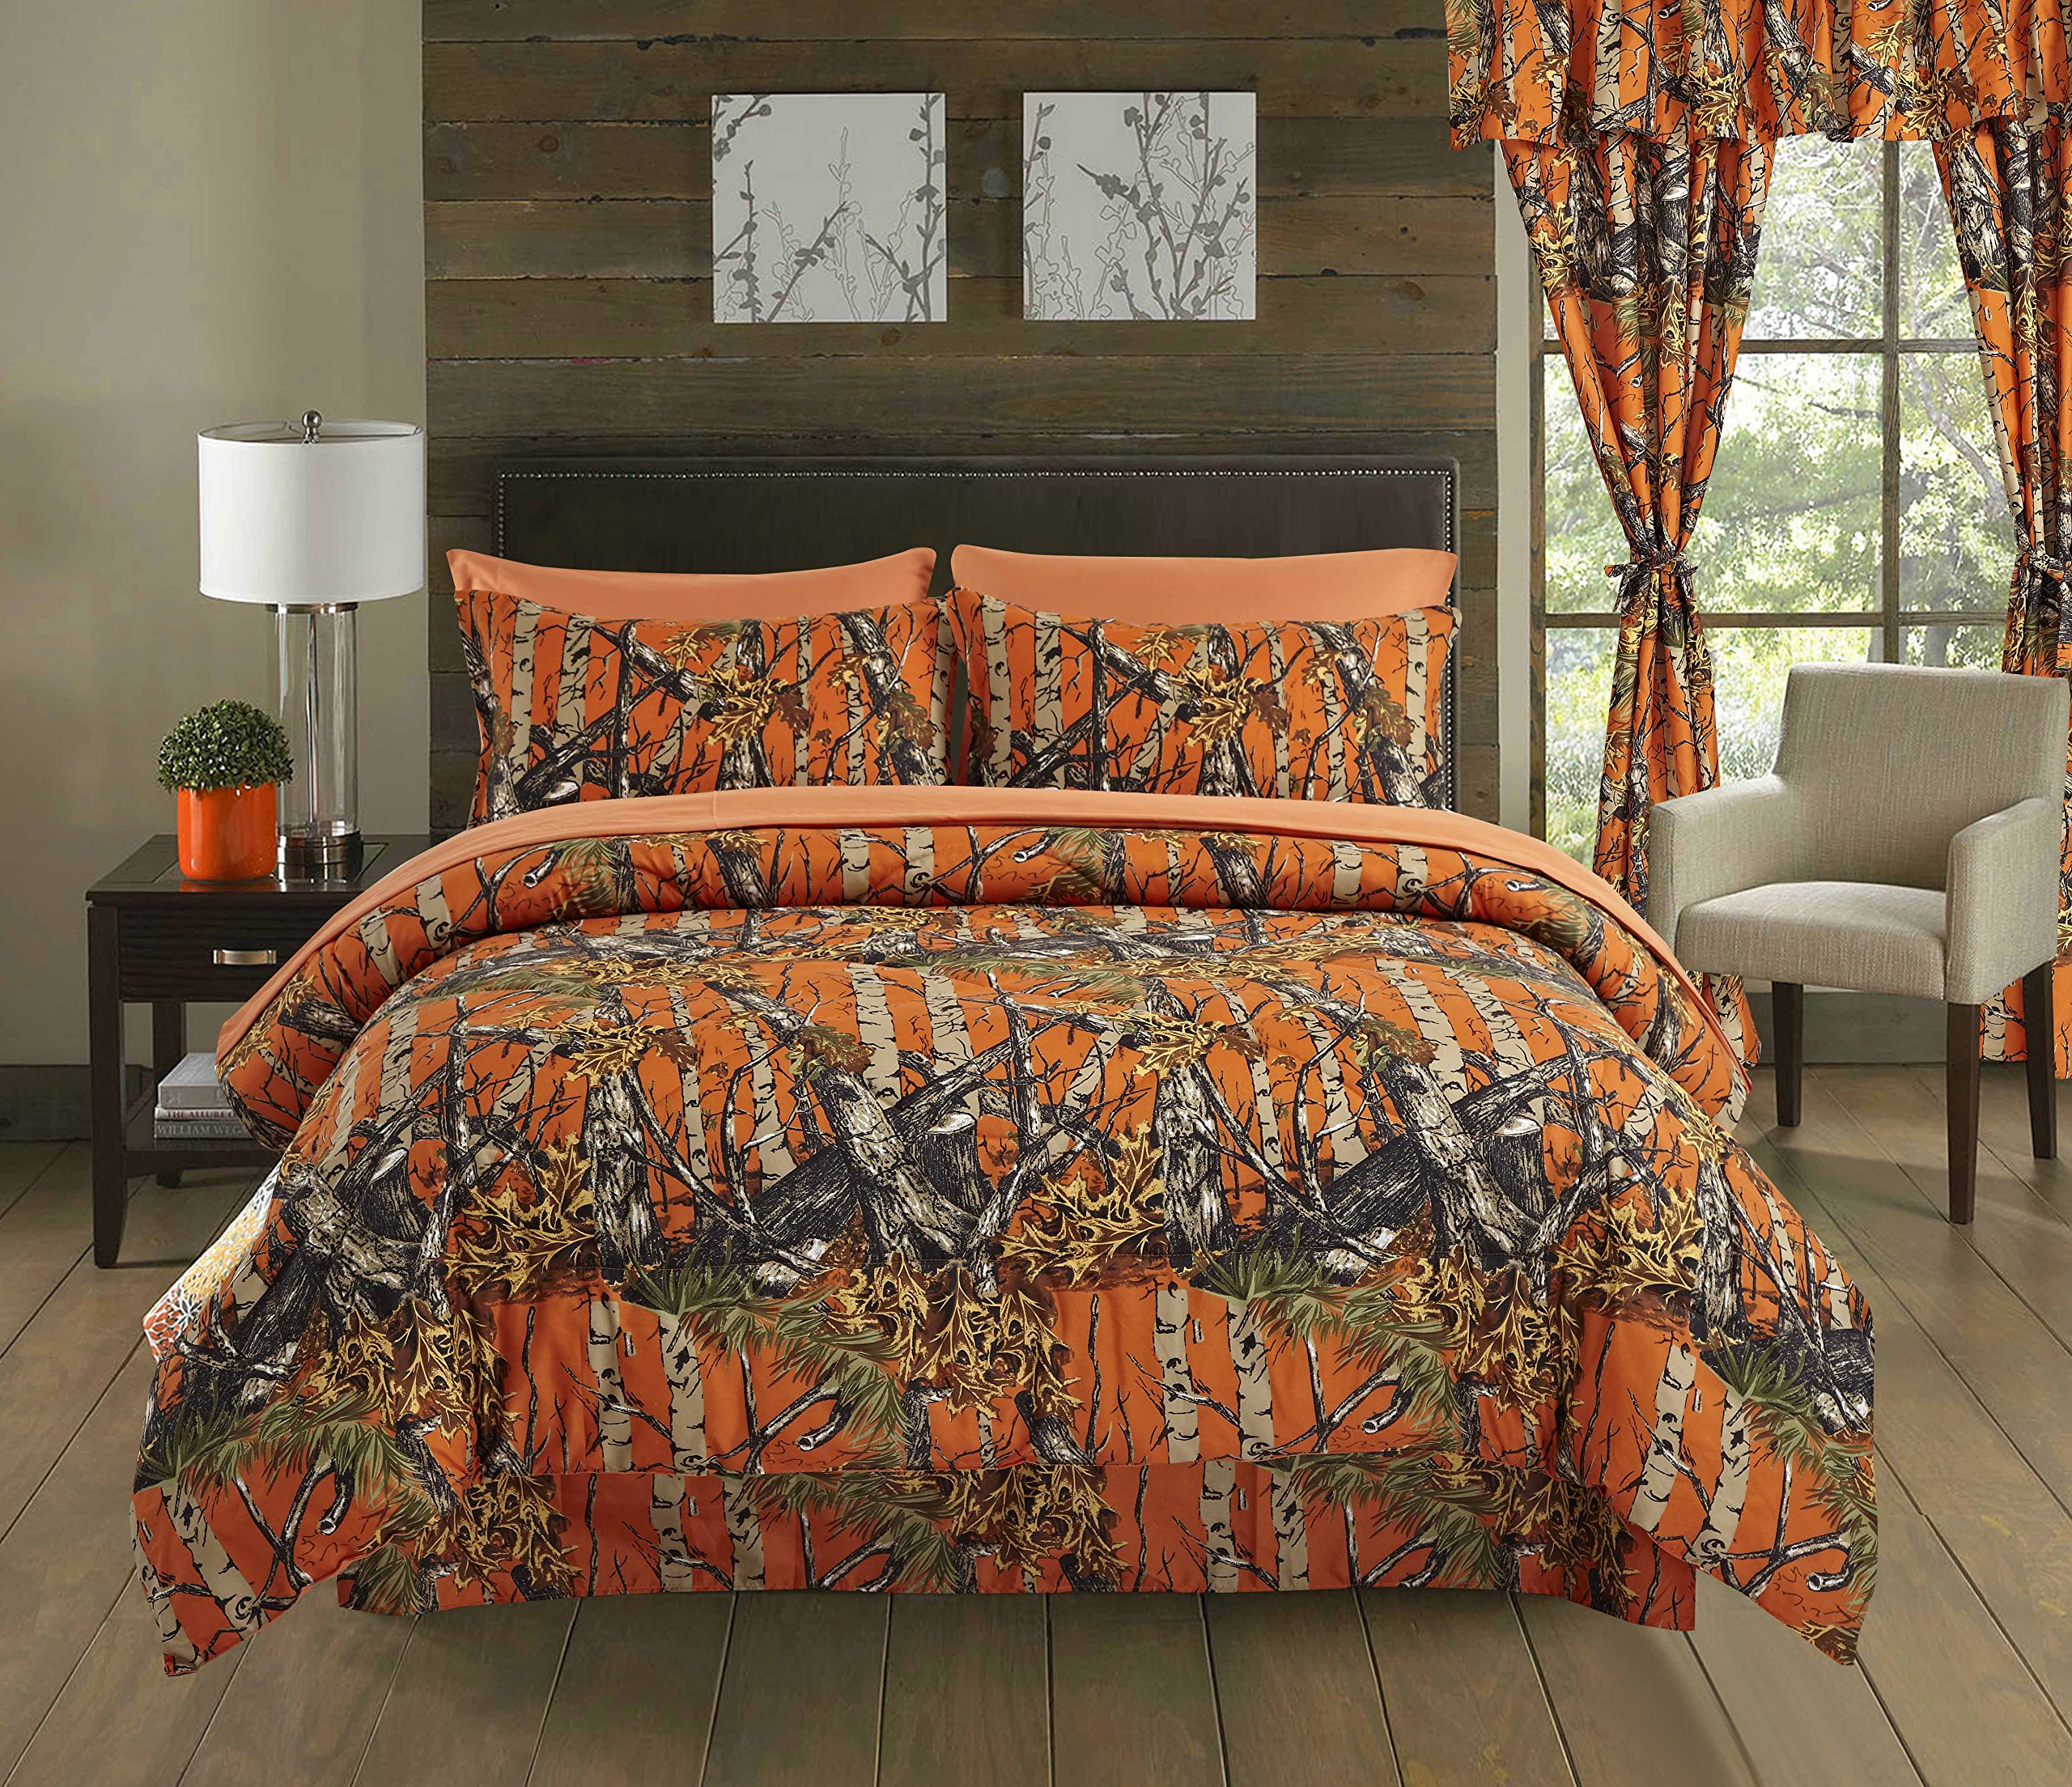 Regal Comfort The Woods Orange Camouflage Queen 4 Piece Premium Luxury Comforter, Bed Skirt, and 2 Pillow Shams Set - Camo Bedding Set For Hunters Cabin or Rustic Lodge Teens Boys and Girls